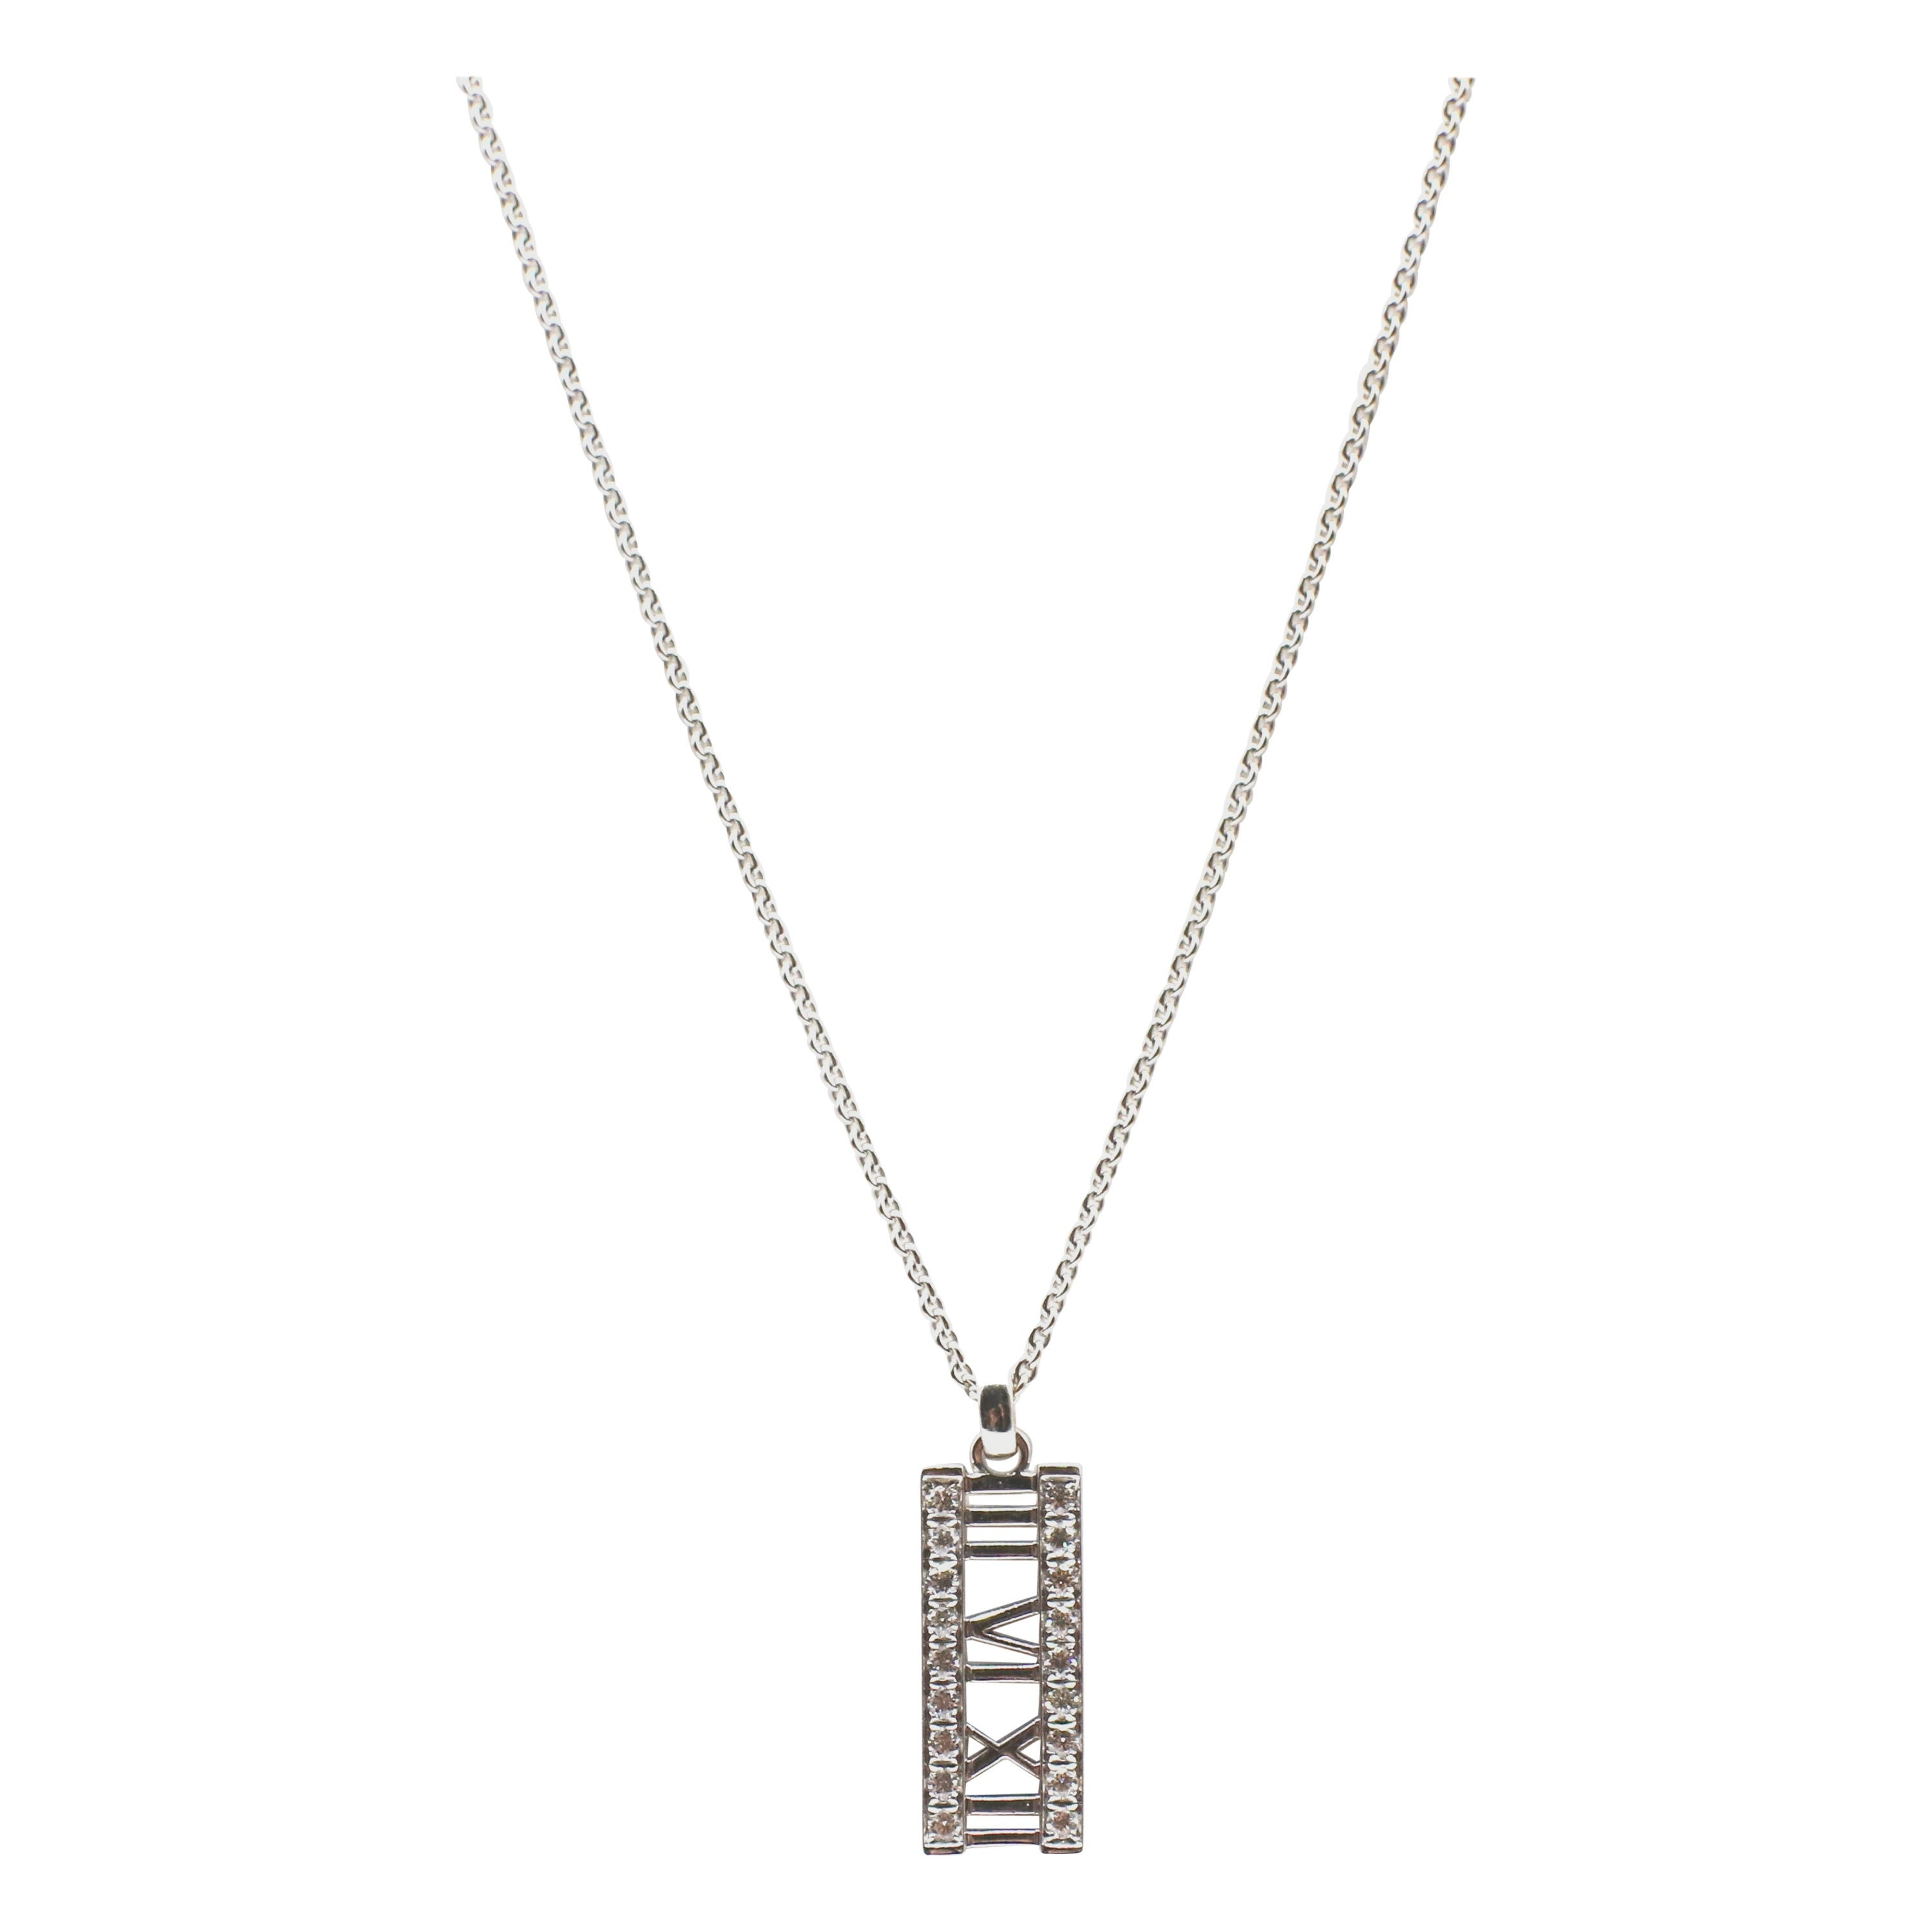 Tiffany & Co. Atlas 18 Karat White Gold Diamond Bar Pendant Necklace